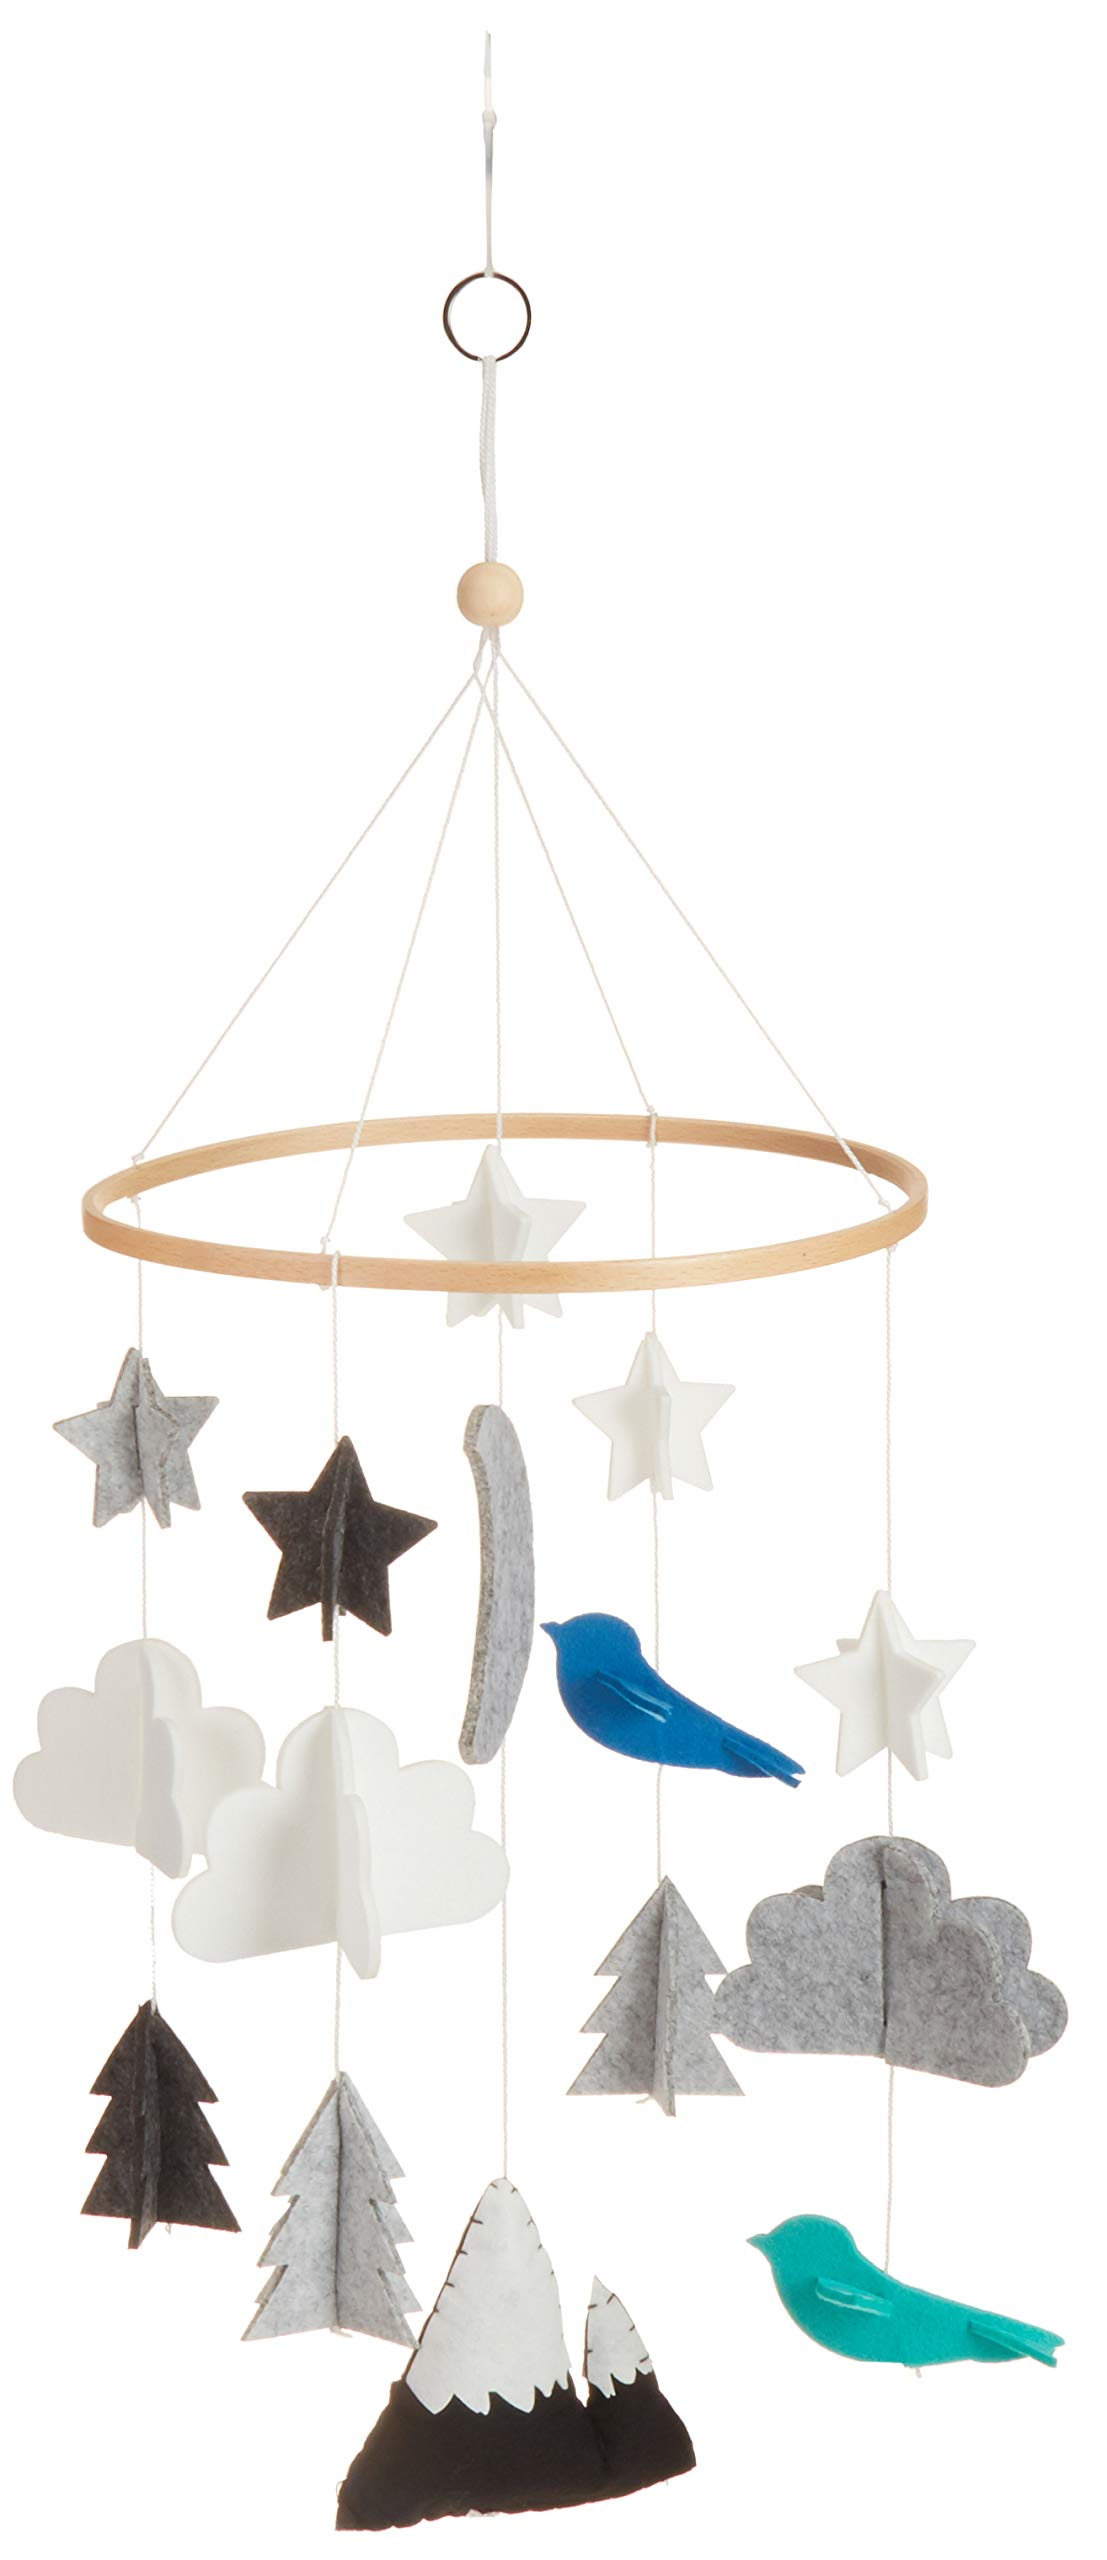 Dreamy Cloud and Stars for Nursery Decor and Ceiling Decoration Gender Neutral and Handmade Premium Materials Baby Crib Mobile by Cheeky Owl